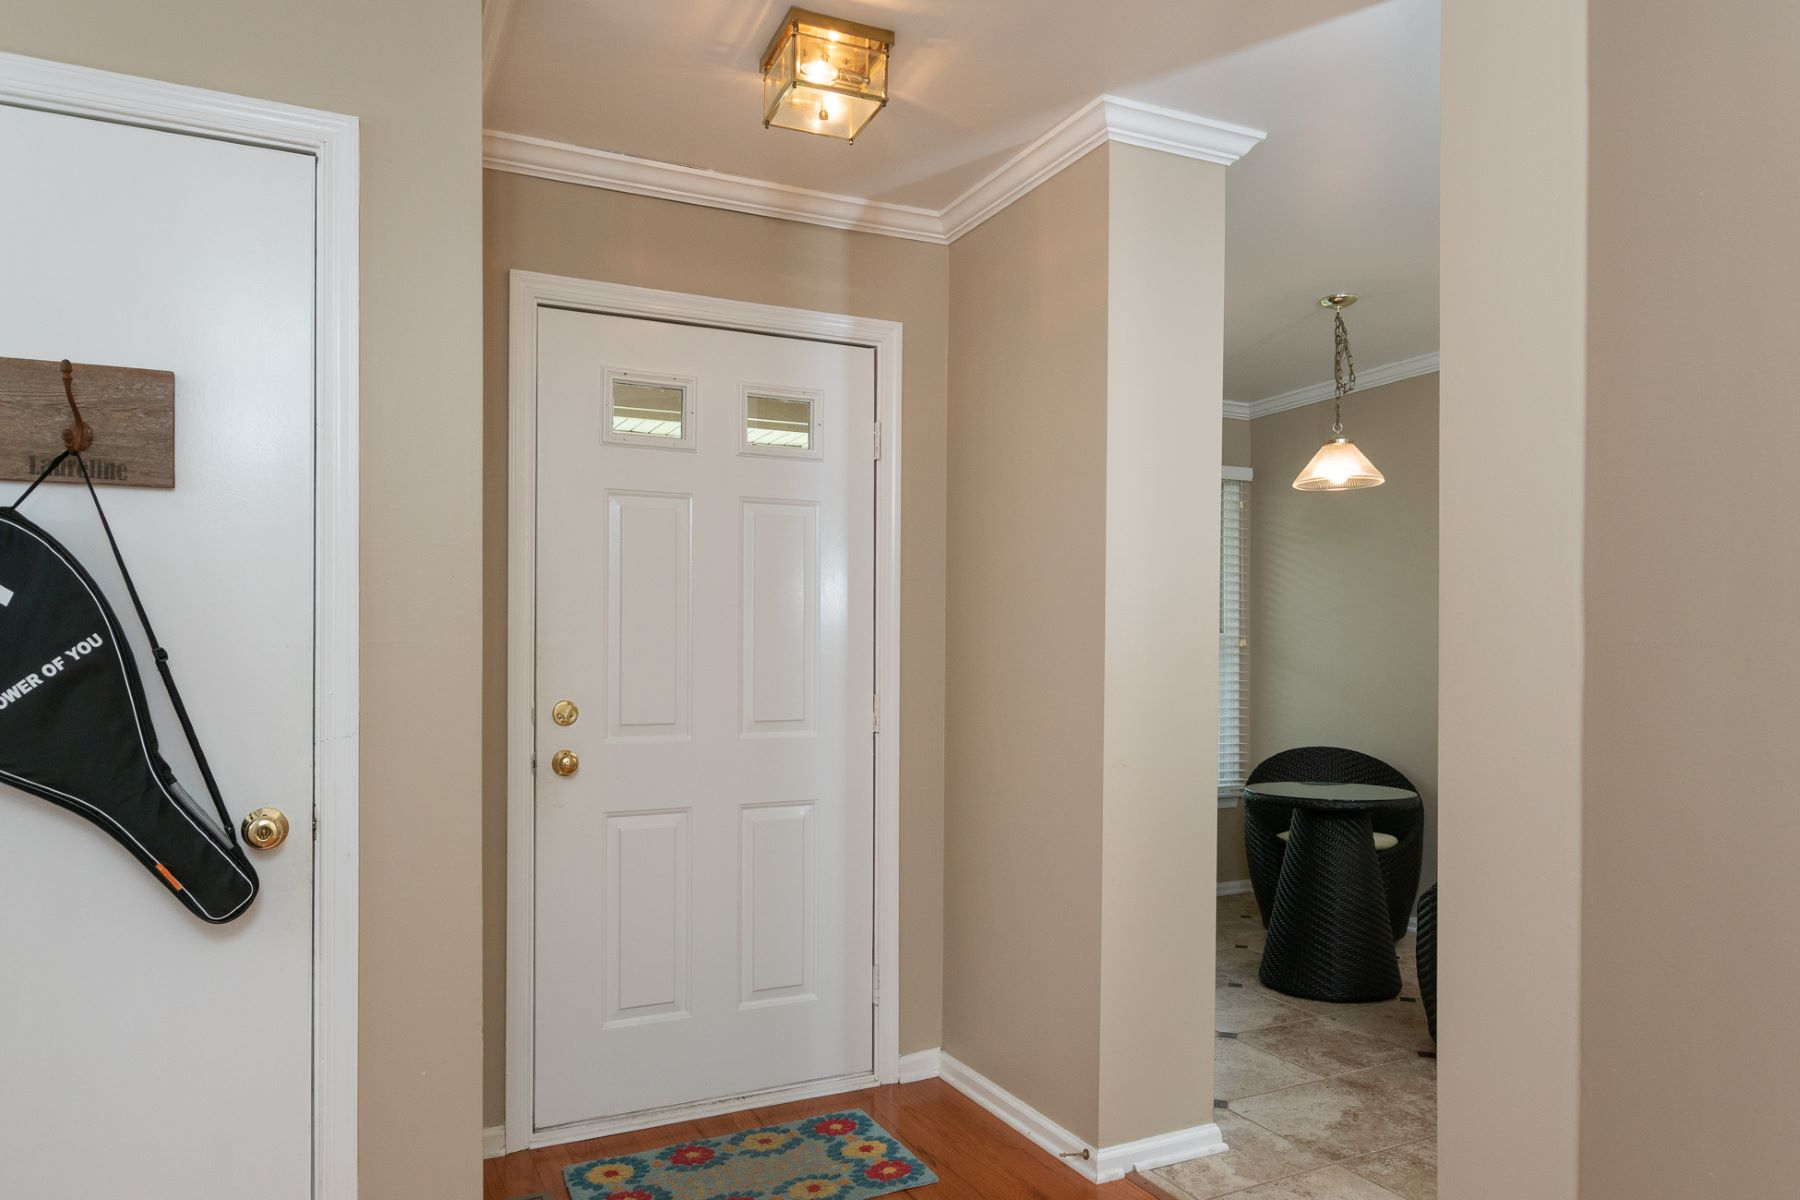 Additional photo for property listing at Washington Oaks Rental just in time for School! 37 Benjamin Rush Lane, Princeton, New Jersey 08540 United States